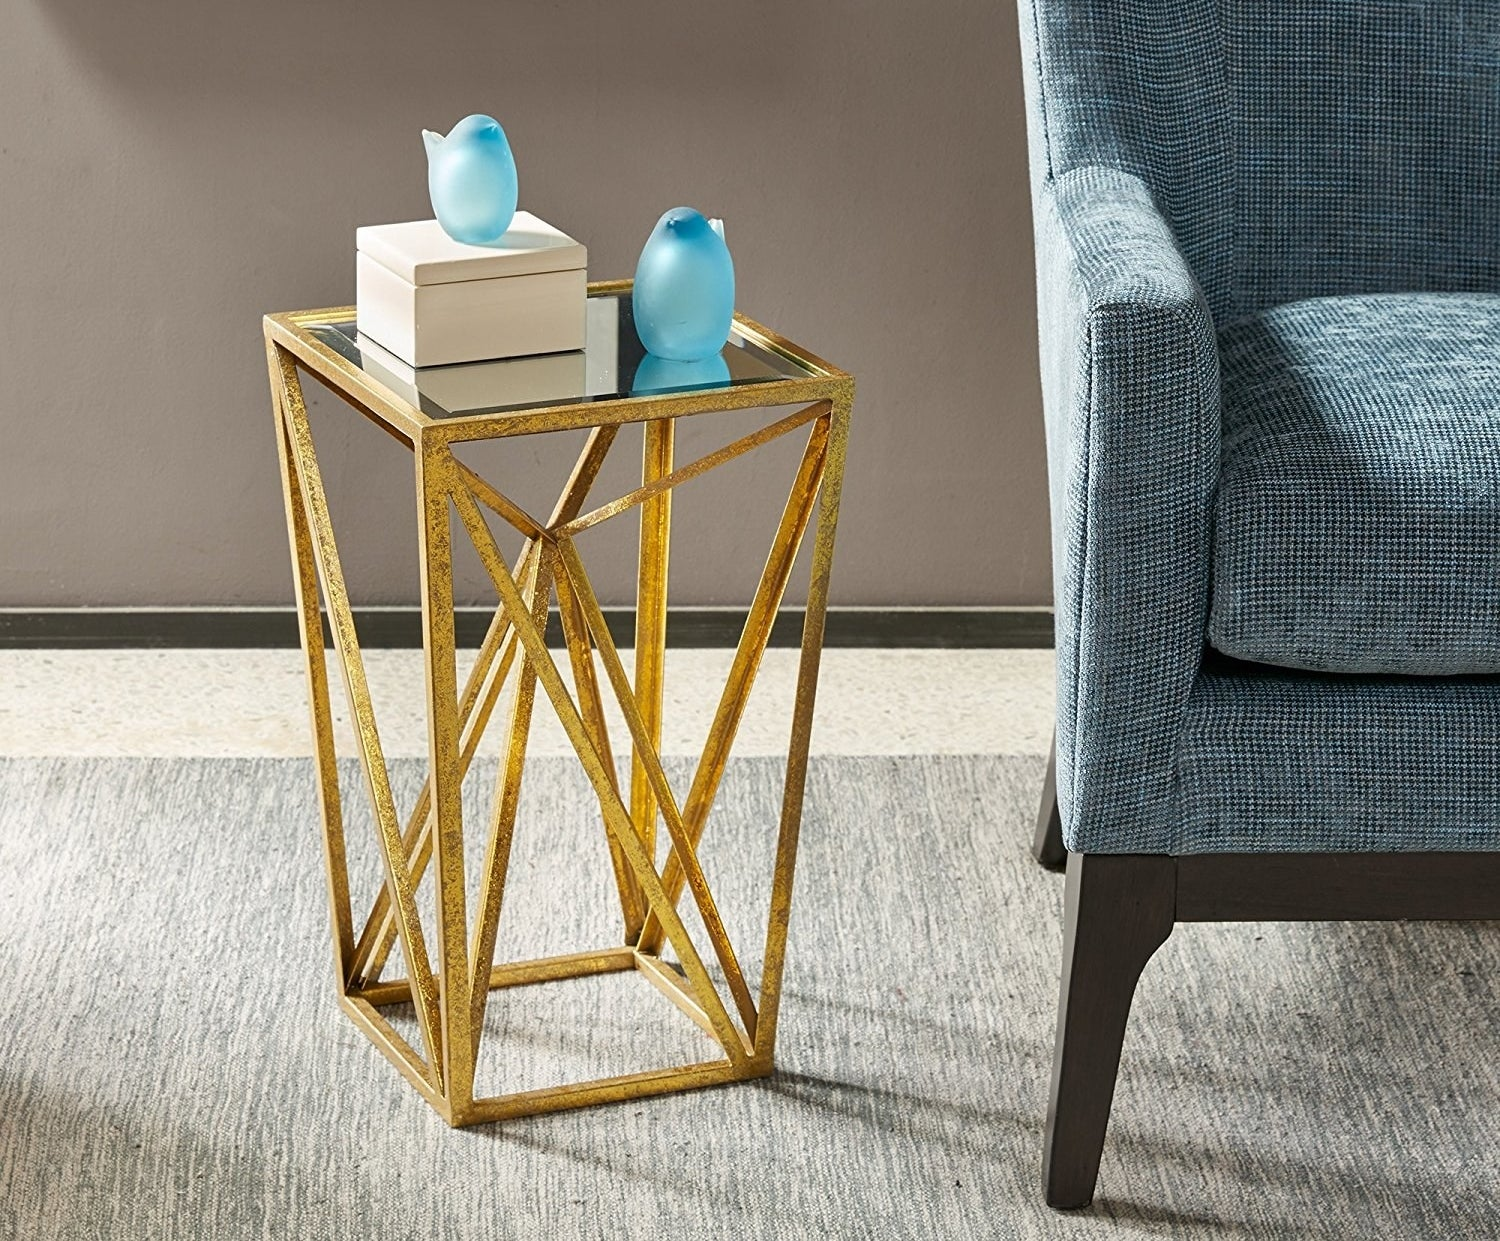 """Promising review: """"The gold has a glam look to it, and the mirror on top is beautiful. It is super lightweight and easy to move, but sturdy enough to be able to hold a lamp or vase."""" —JessicalynnGet it from Amazon for $68.72+ (available in two colors)."""